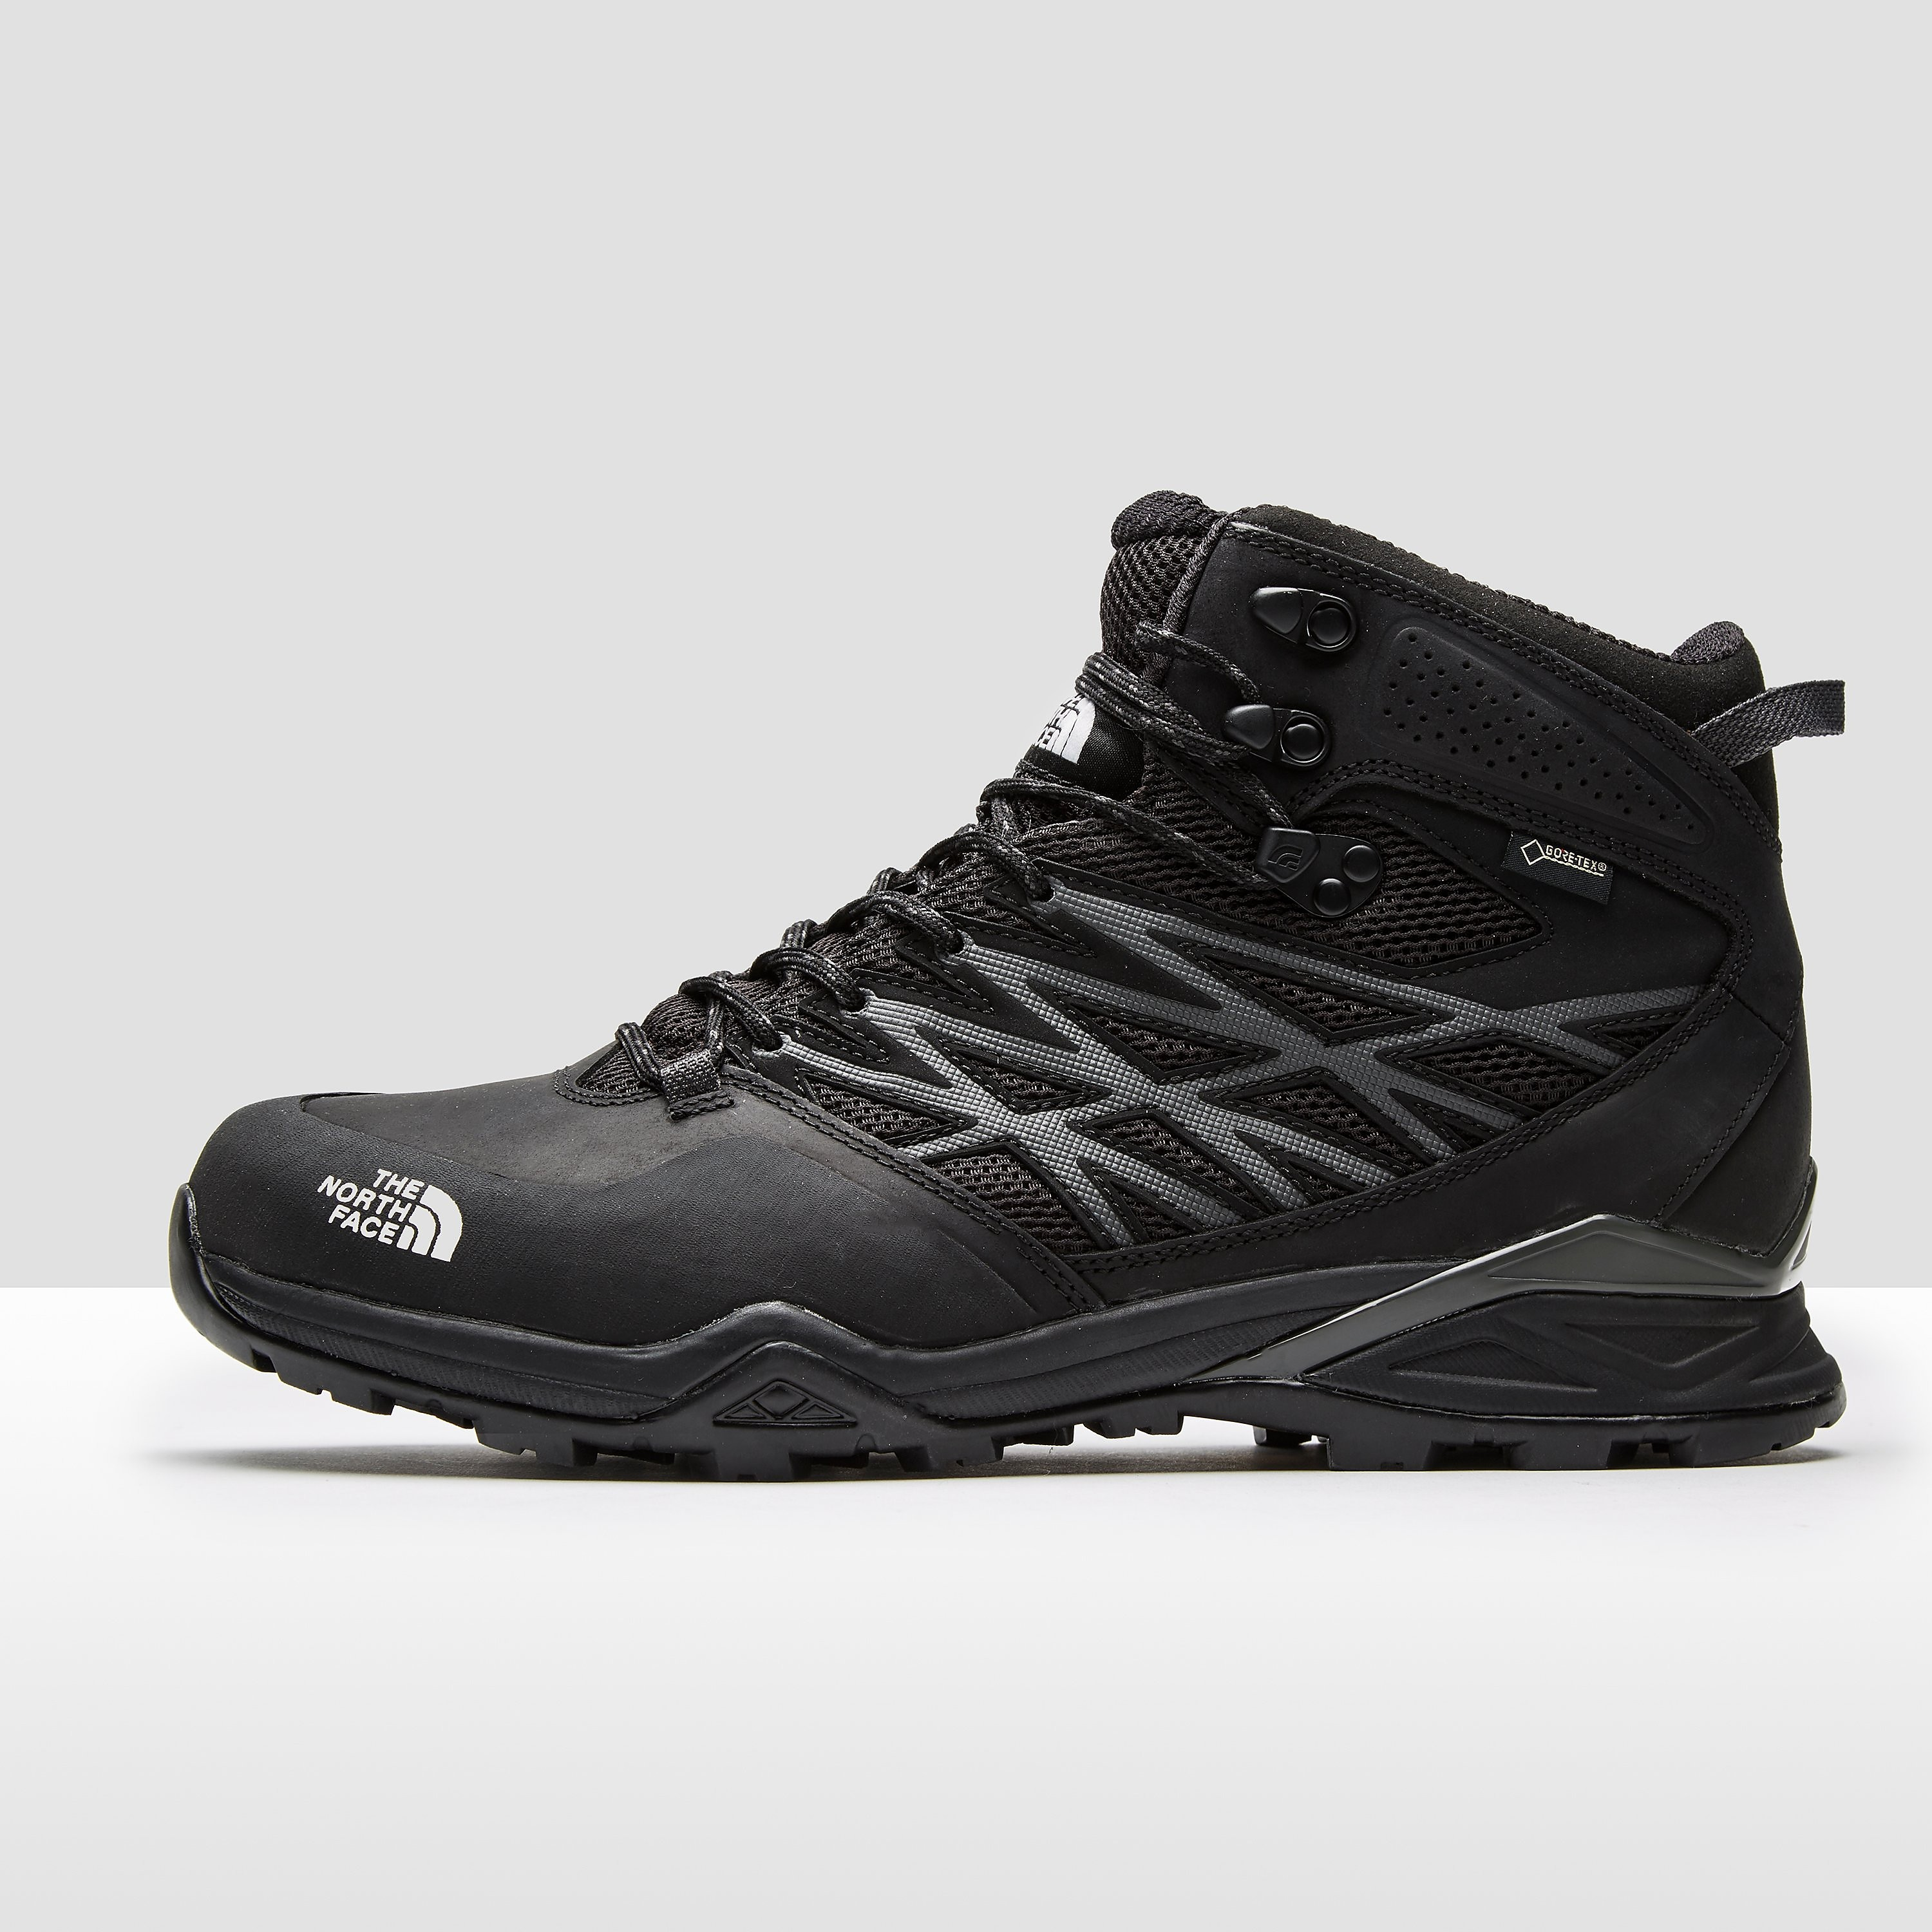 The North Face Hedgehog Mid GTX® Men's Walking Boots